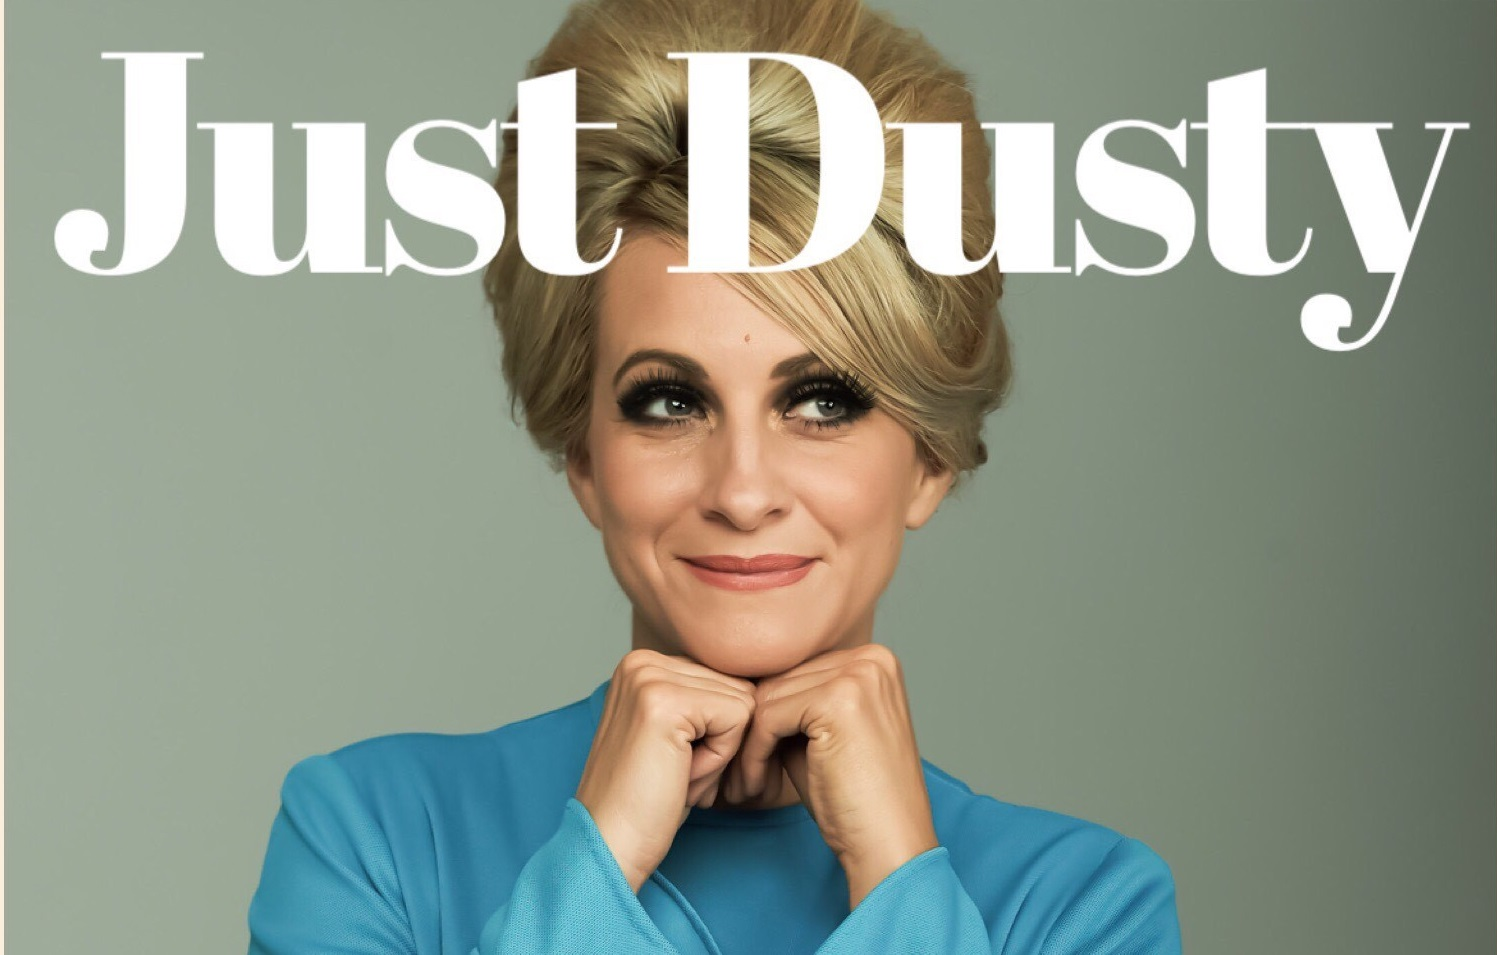 Dusty Springfield Tribute Act- Emily